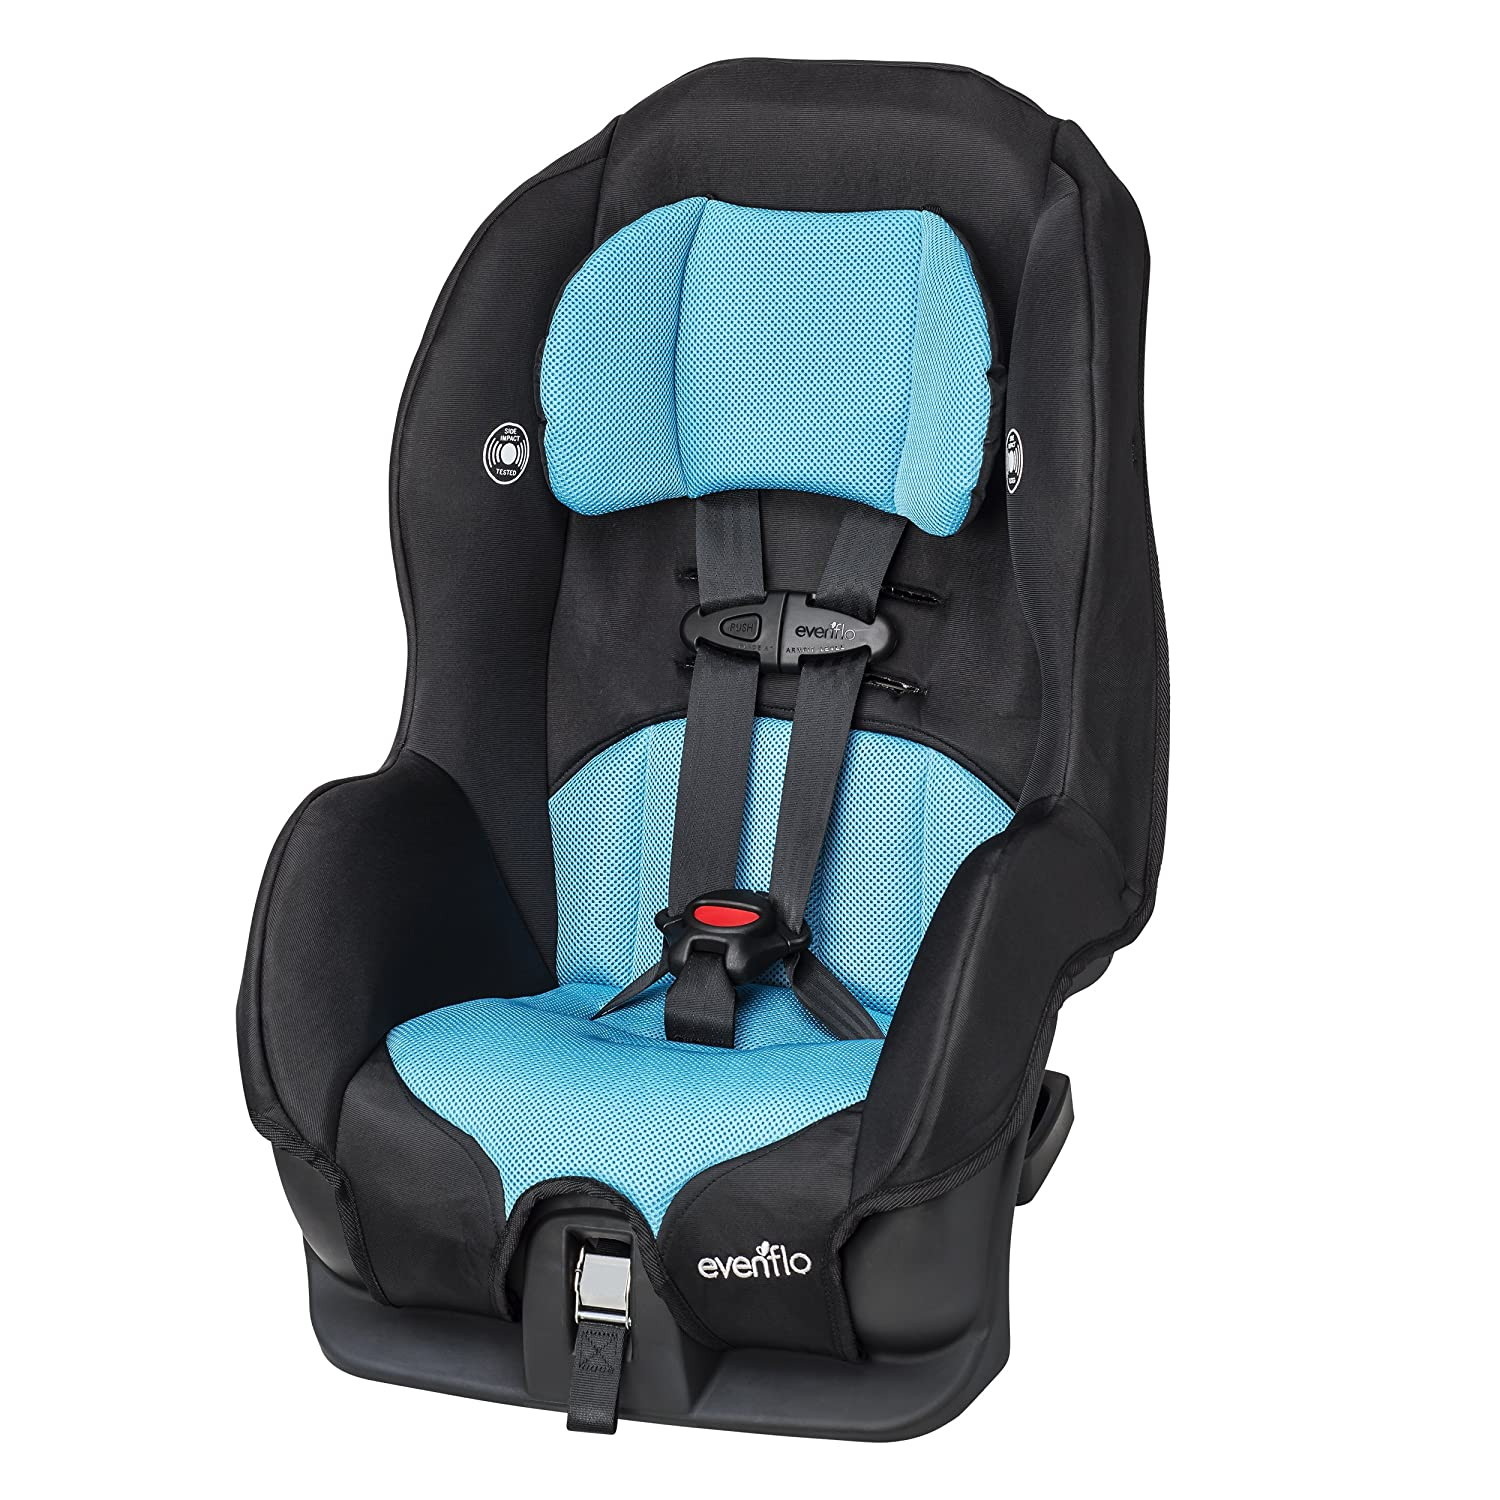 Amazon Evenflo Tribute LX Convertible Car Seat